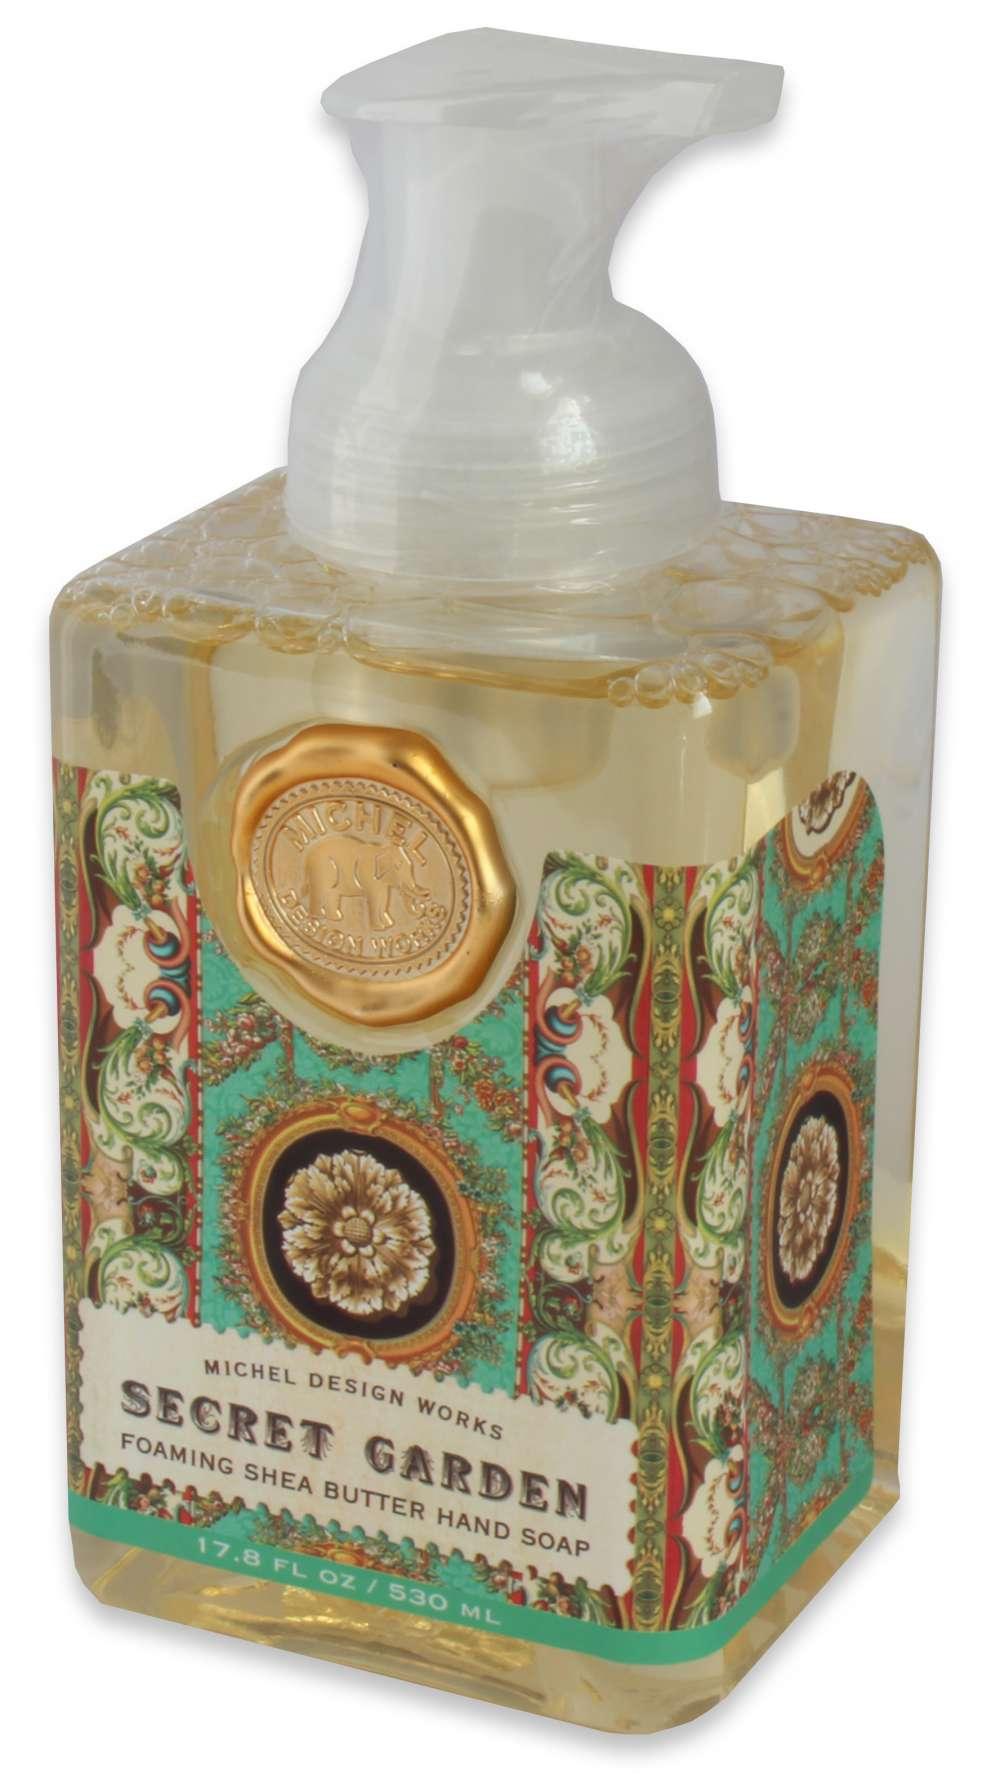 Michel Design Works - Secret Garden Foaming Hand Soap